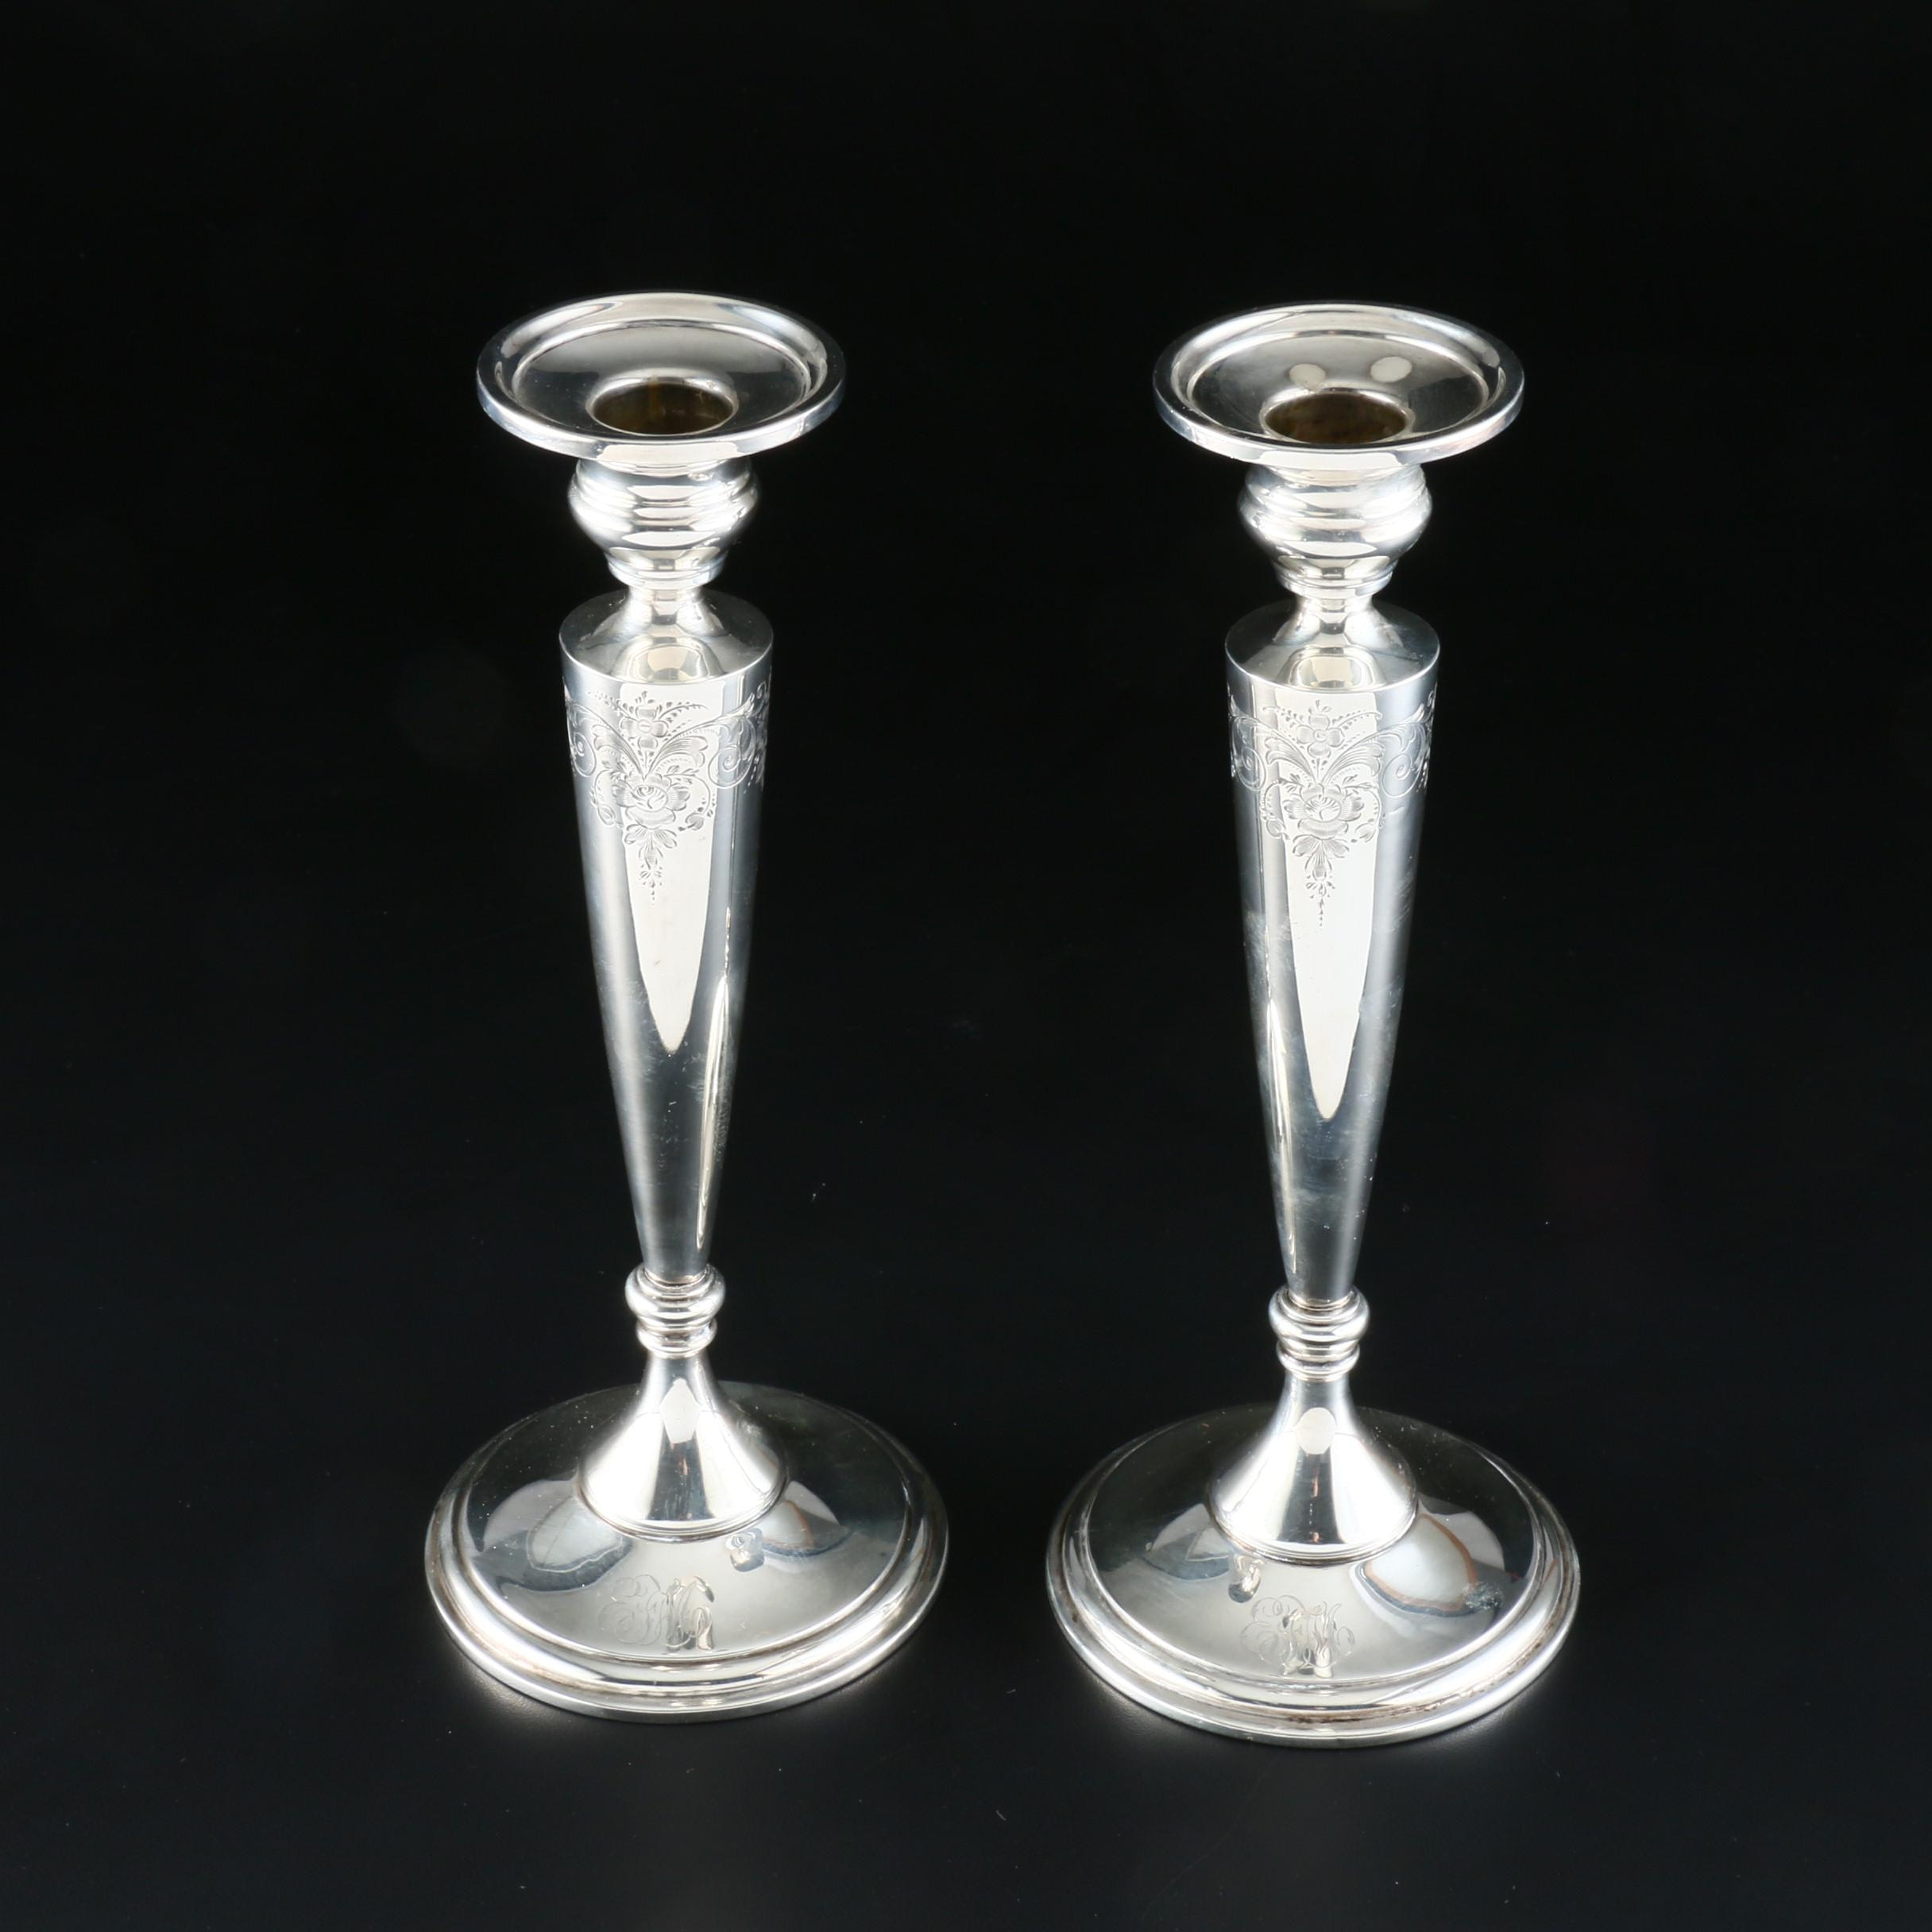 George A. Henckel Weighted Sterling Silver Candlesticks